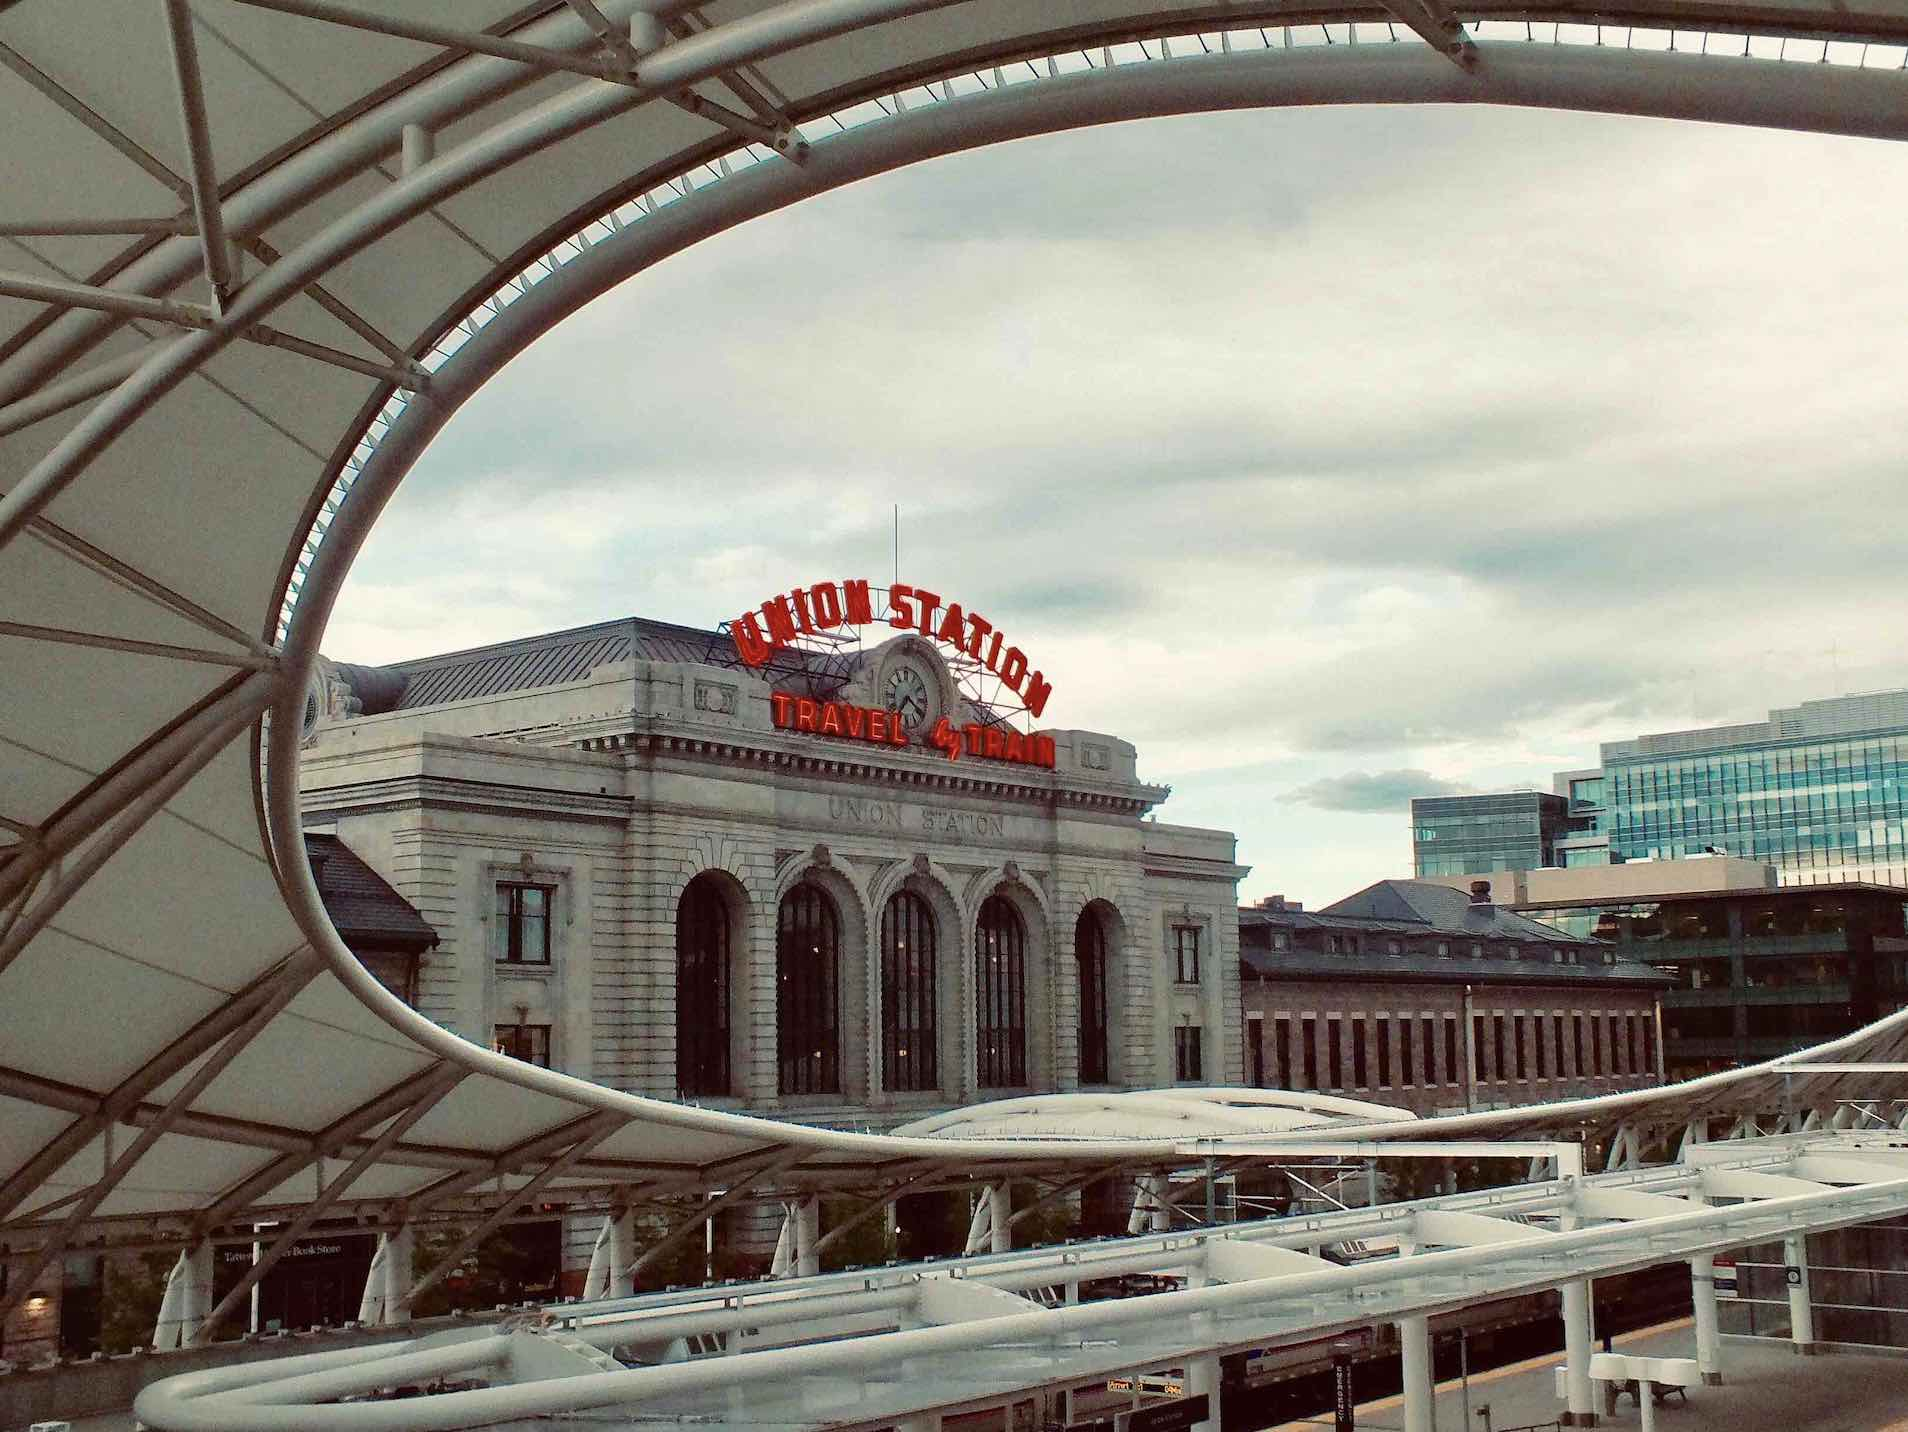 Visiting Union Station is one of the top things to do in downtown Deenver - pieter-van-de-sande-DZ7ZgGDsDrc-unsplash